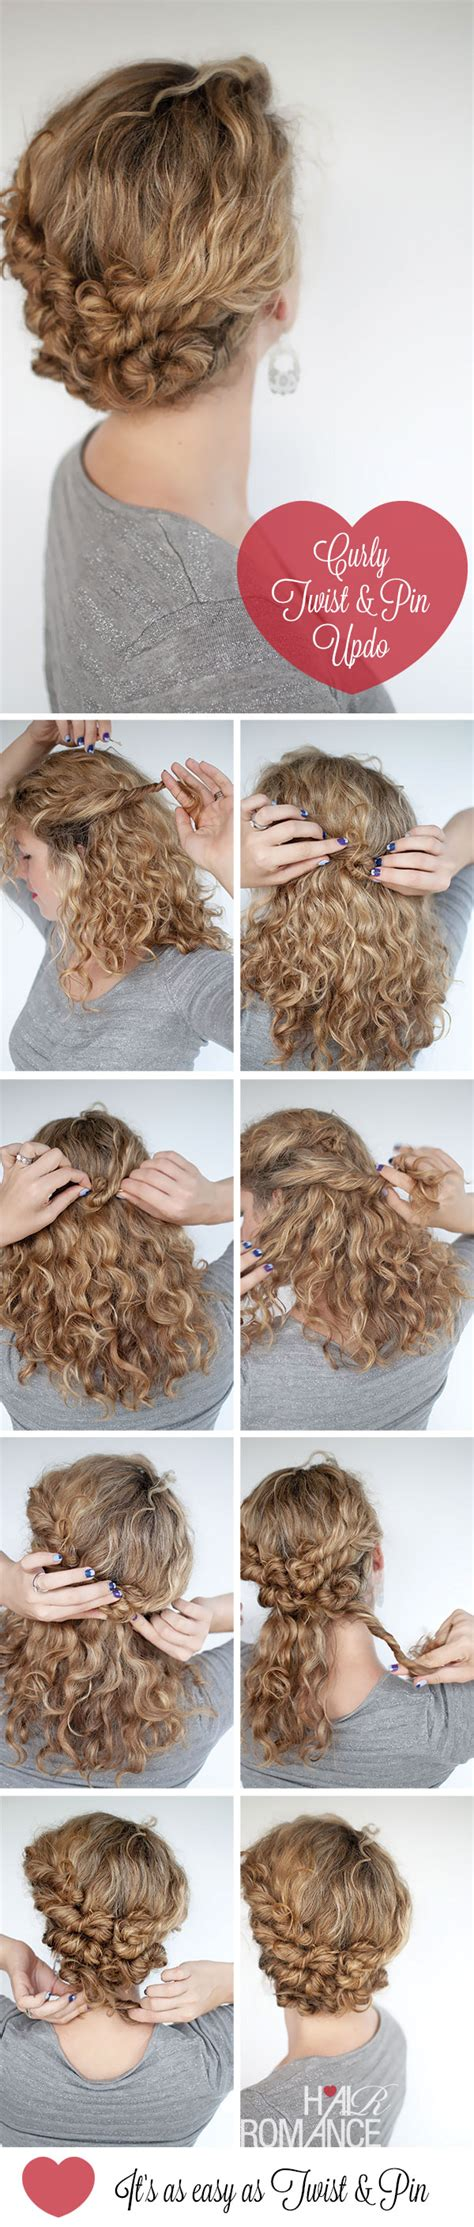 curly hair updos step by step hairstyle tutorial easy twist and pin updo for curly